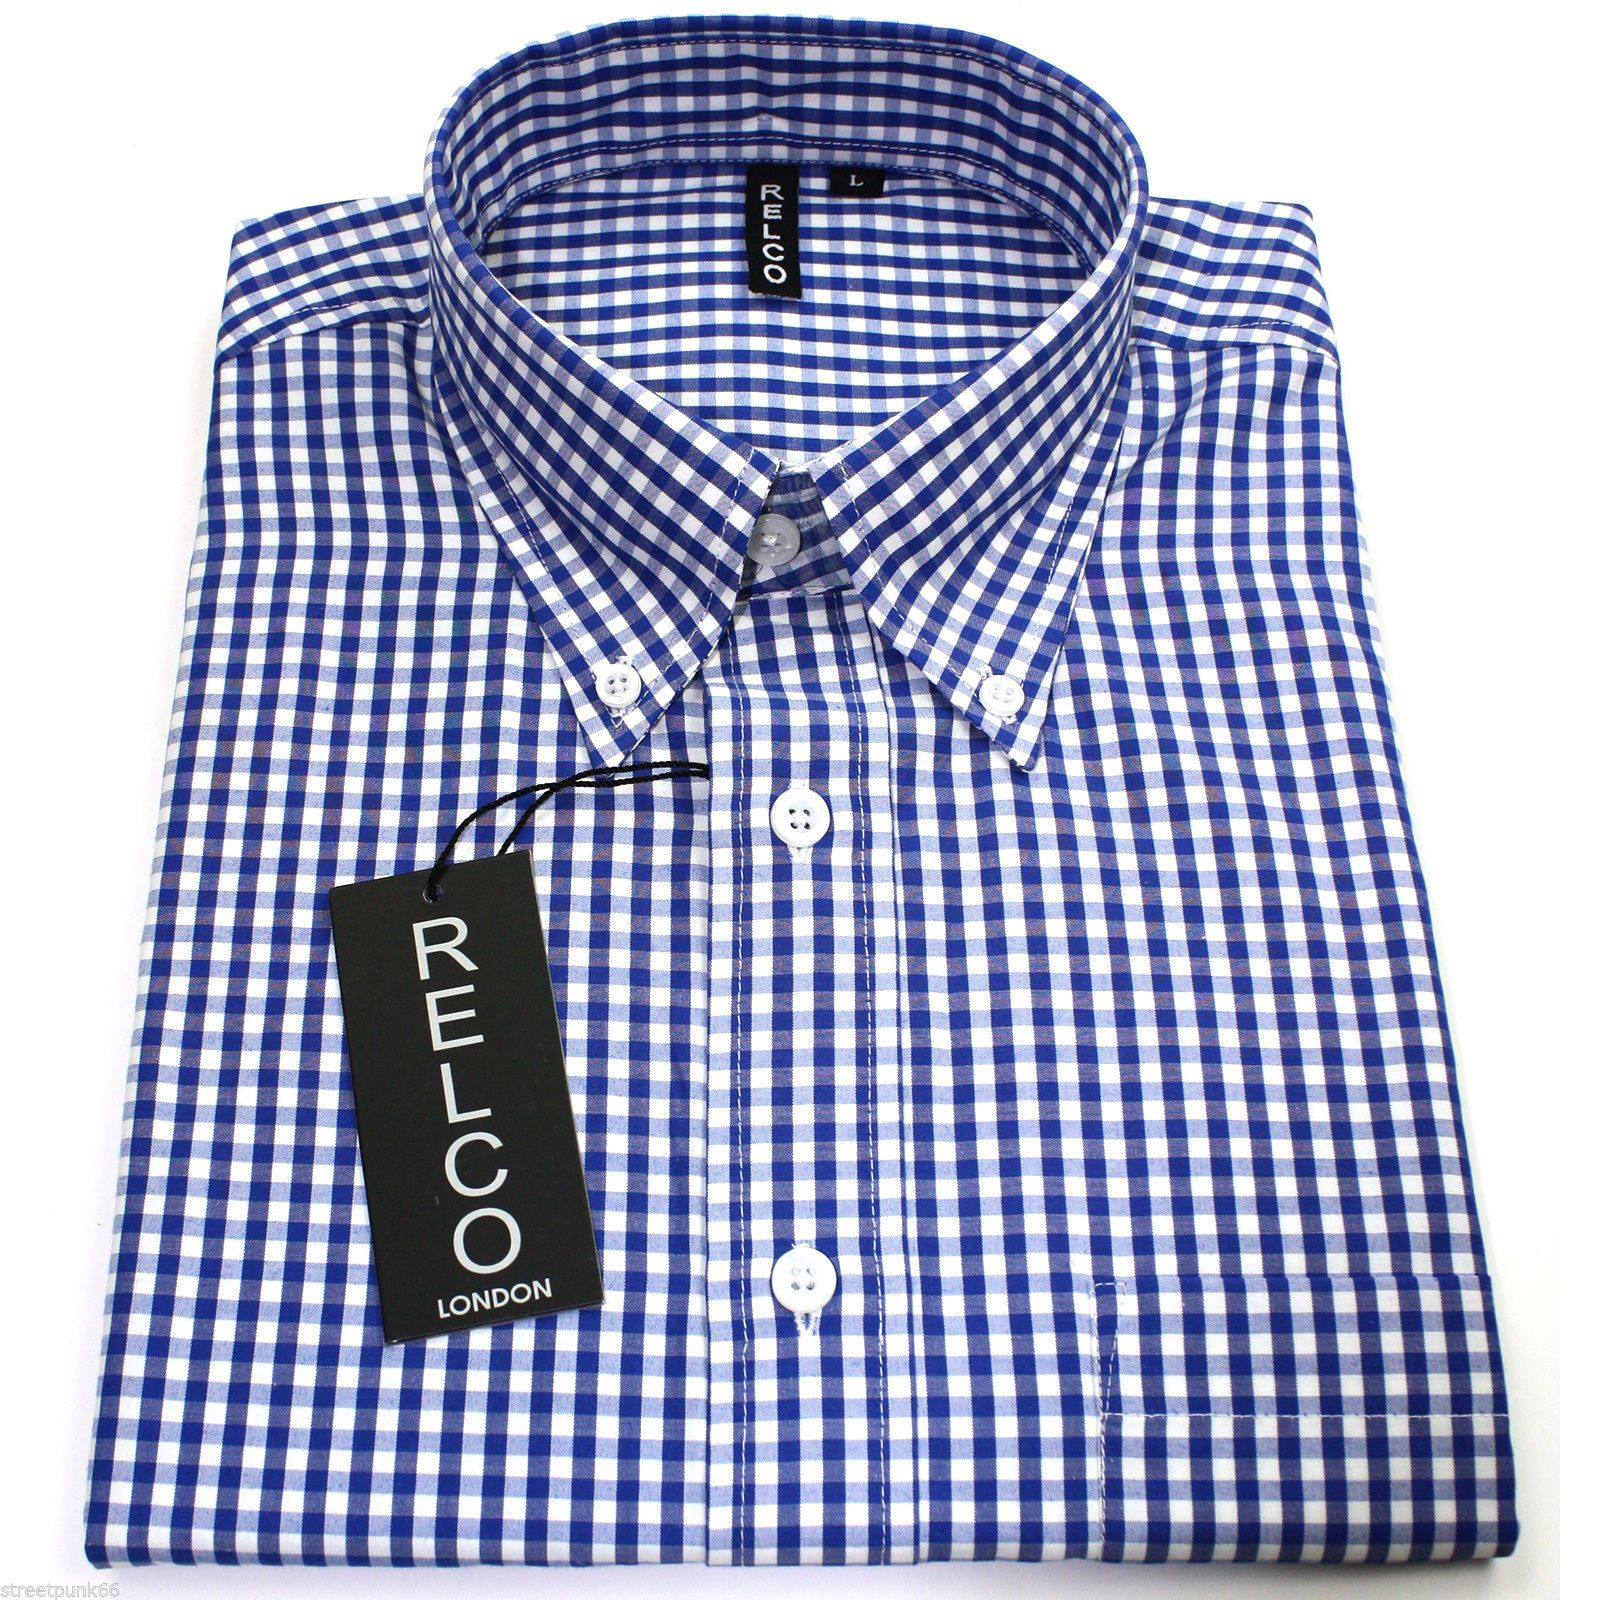 Relco mens blue white gingham short sleeved shirt button for Mens blue gingham shirt